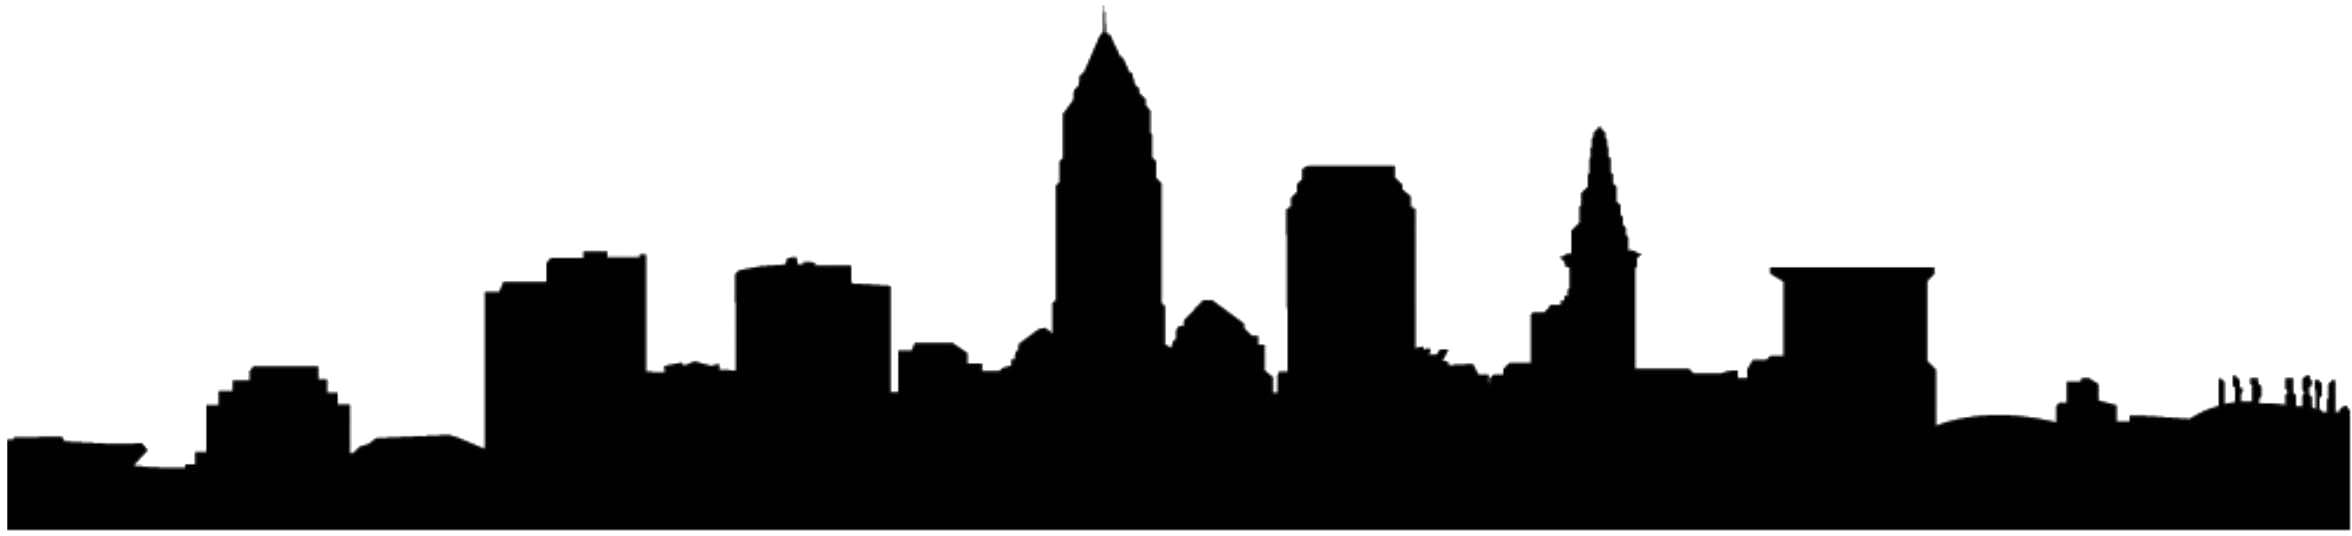 Tall silhouette at getdrawings. Cityscape clipart building infrastructure